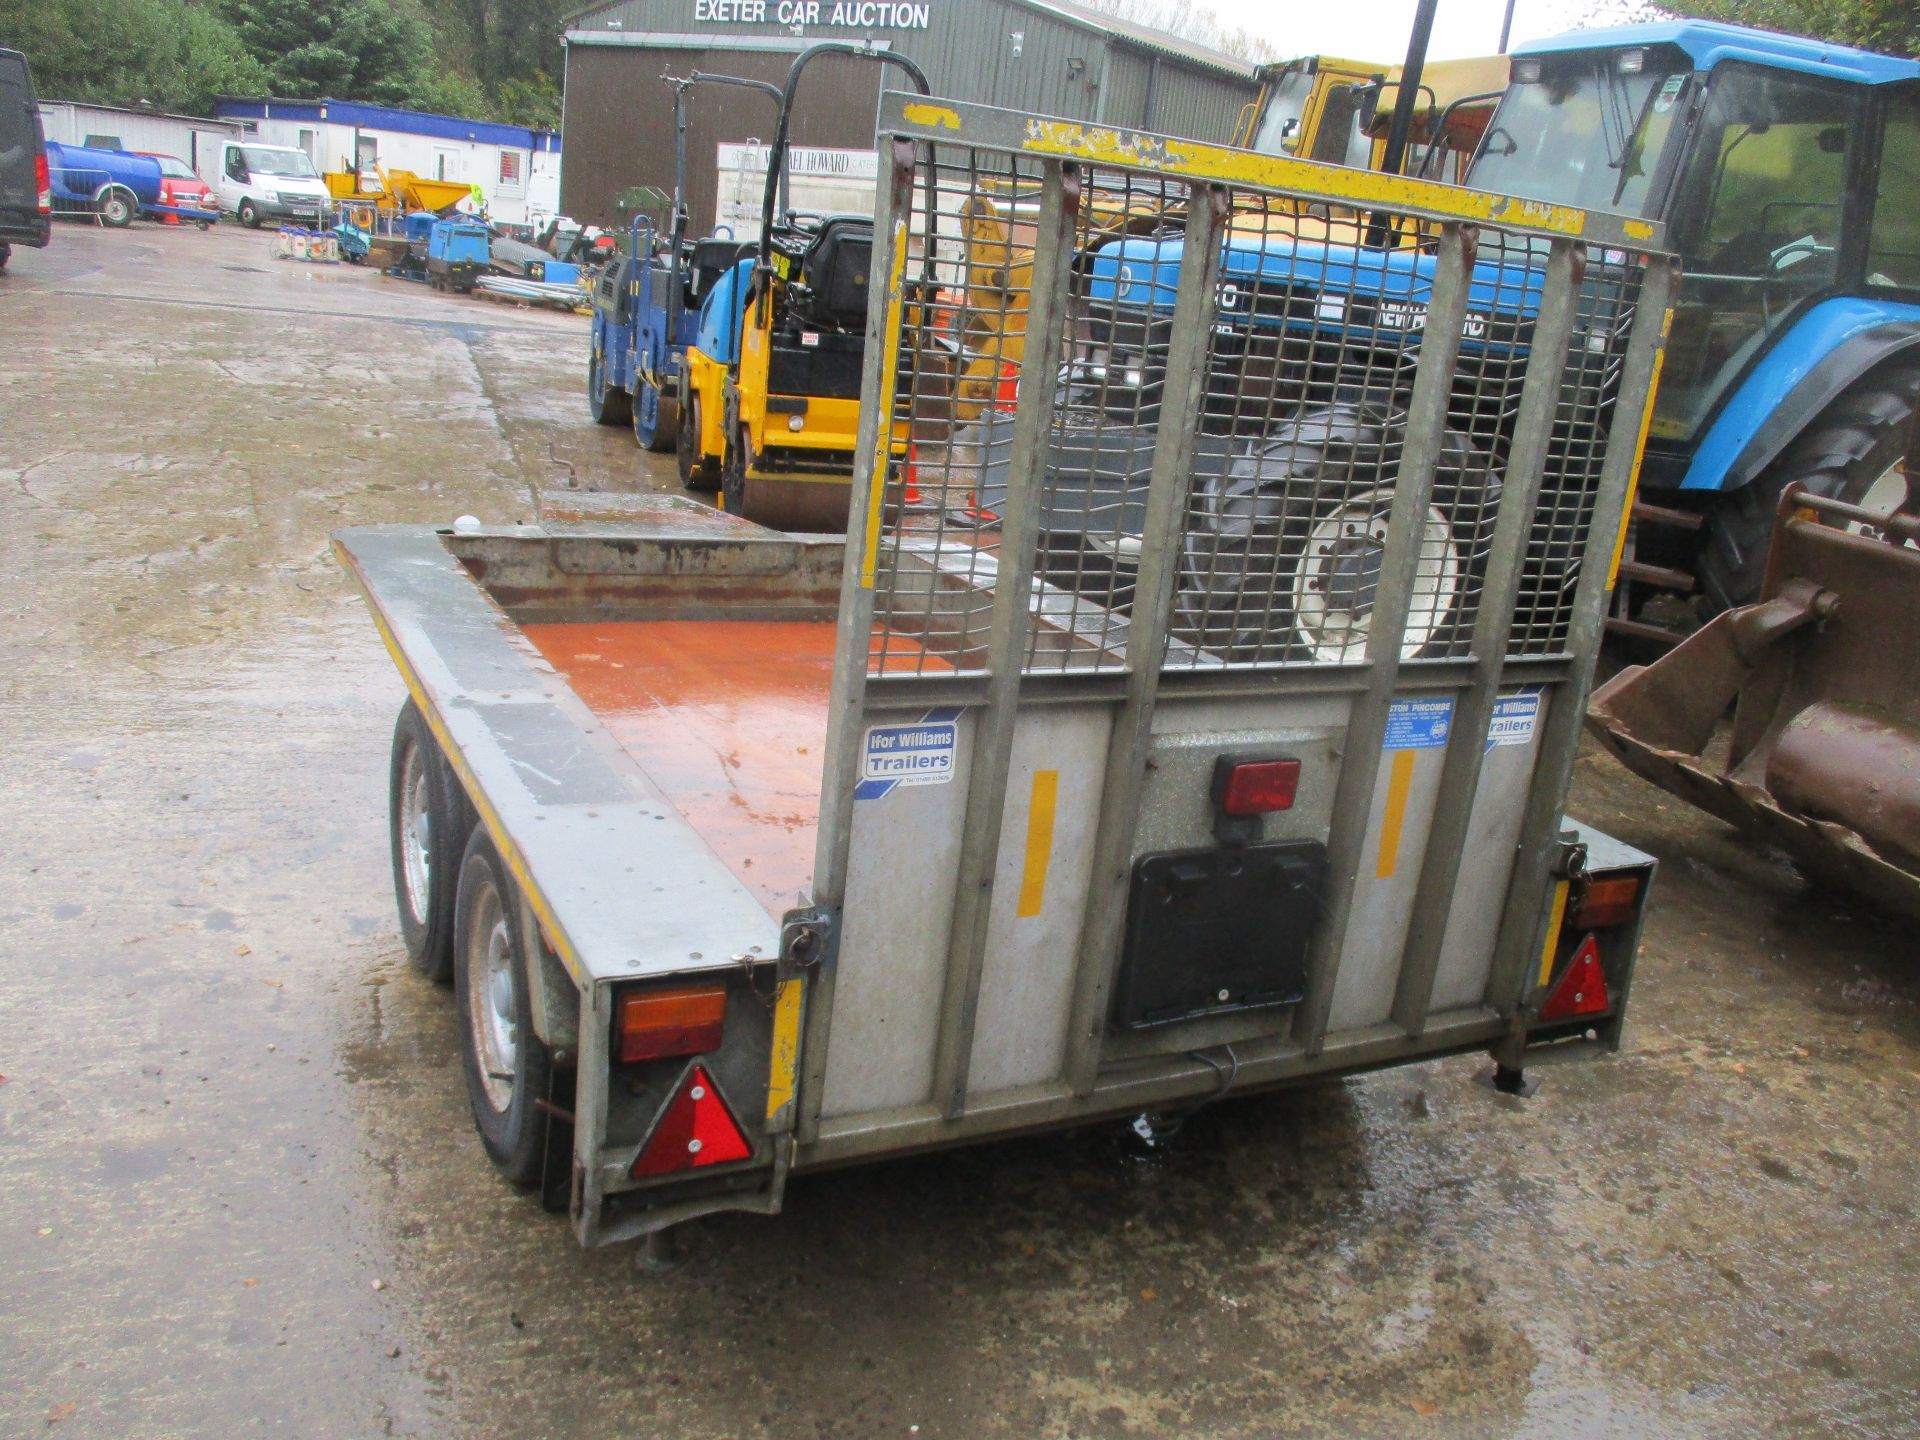 IFOR WILLIAMS TWIN AXLE PLANT TRAILER - Image 3 of 3